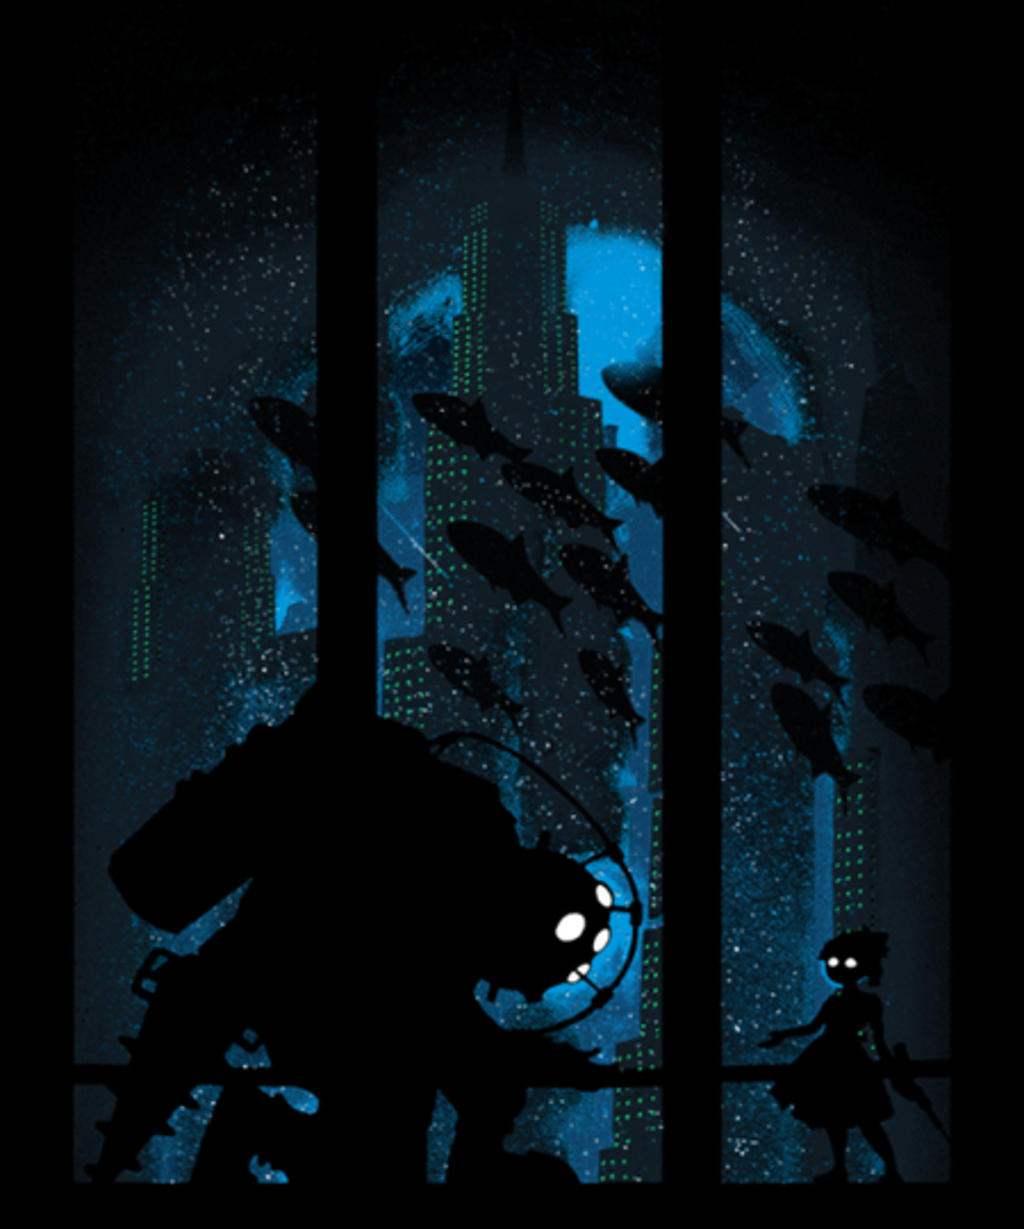 Qwertee: Under the depths